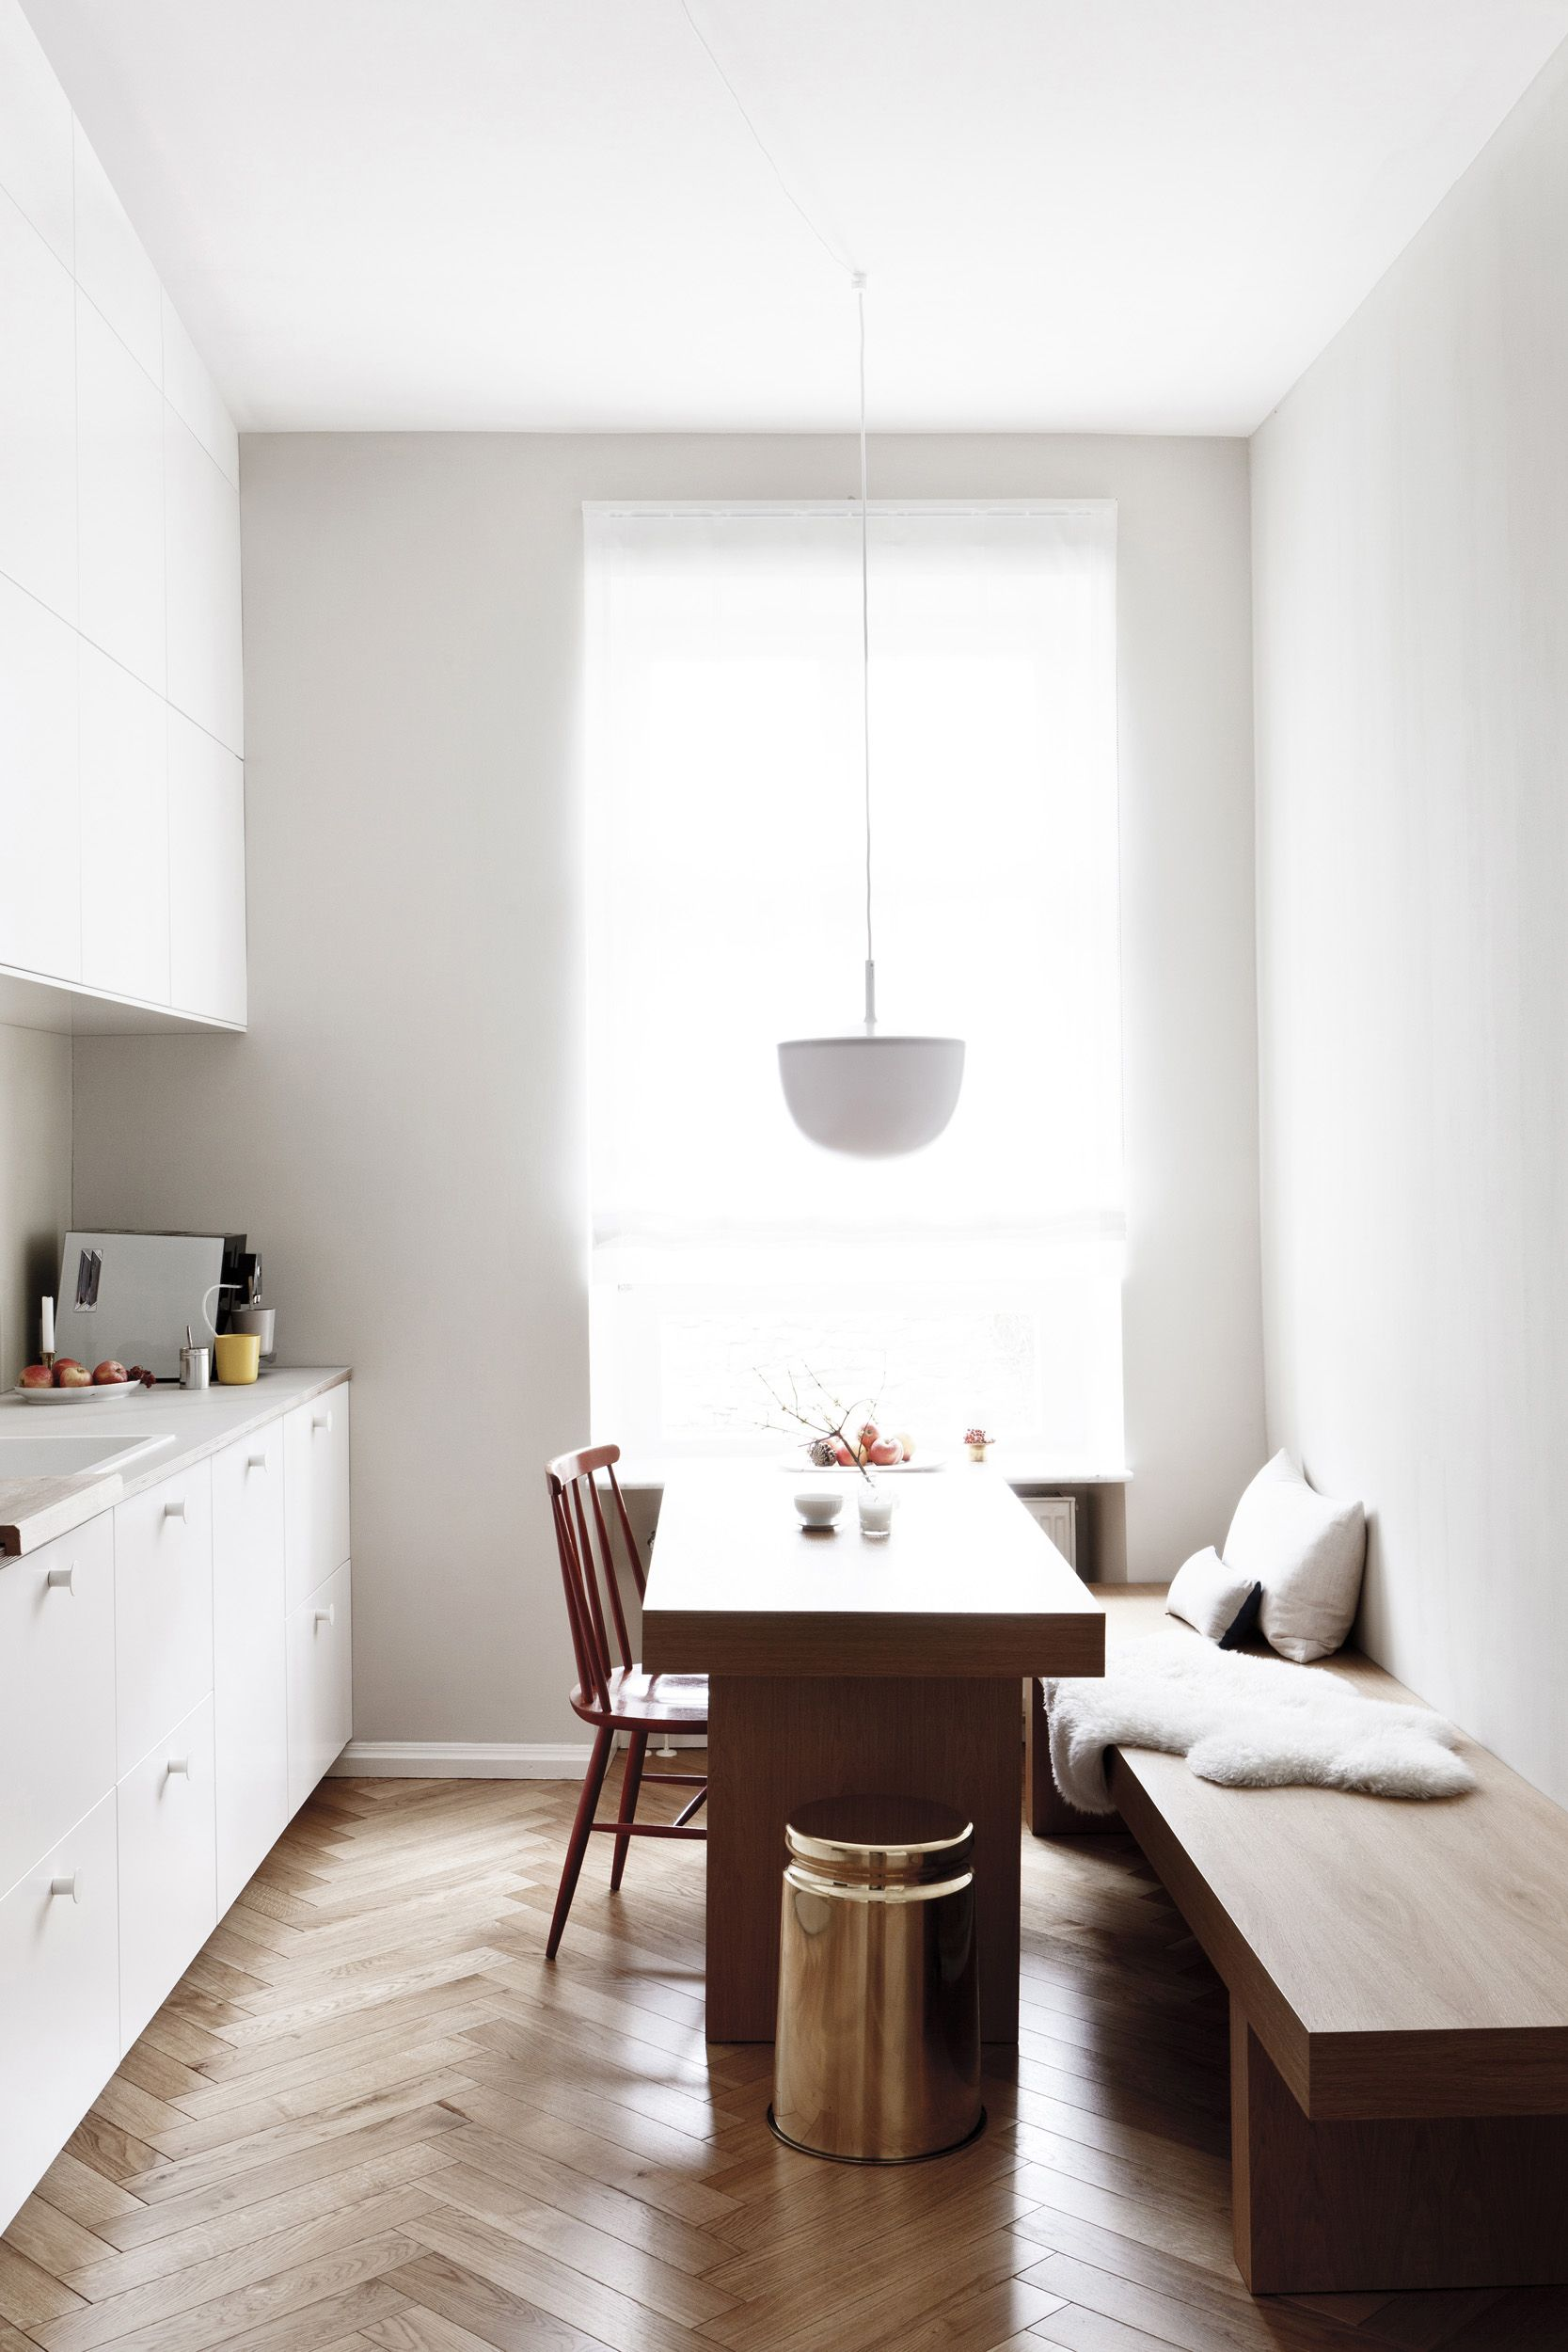 Kitchen Room Interior Design: Earthly And Ethereal: An Apartment Makeover By Studio Oink